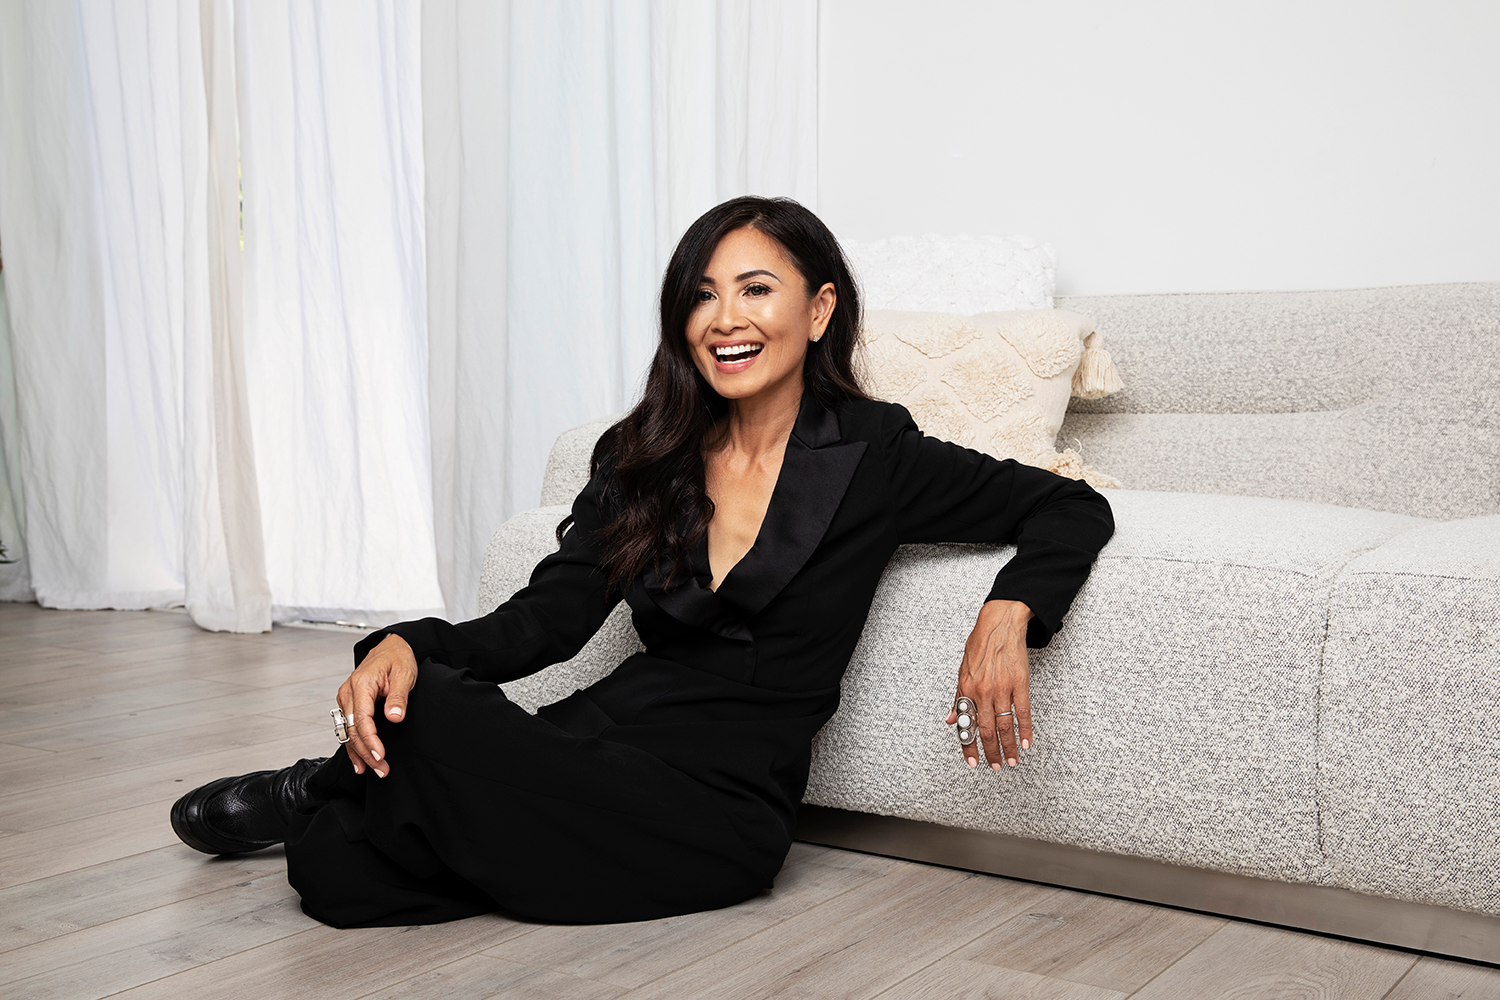 How to be a successful boss lady Kalika?